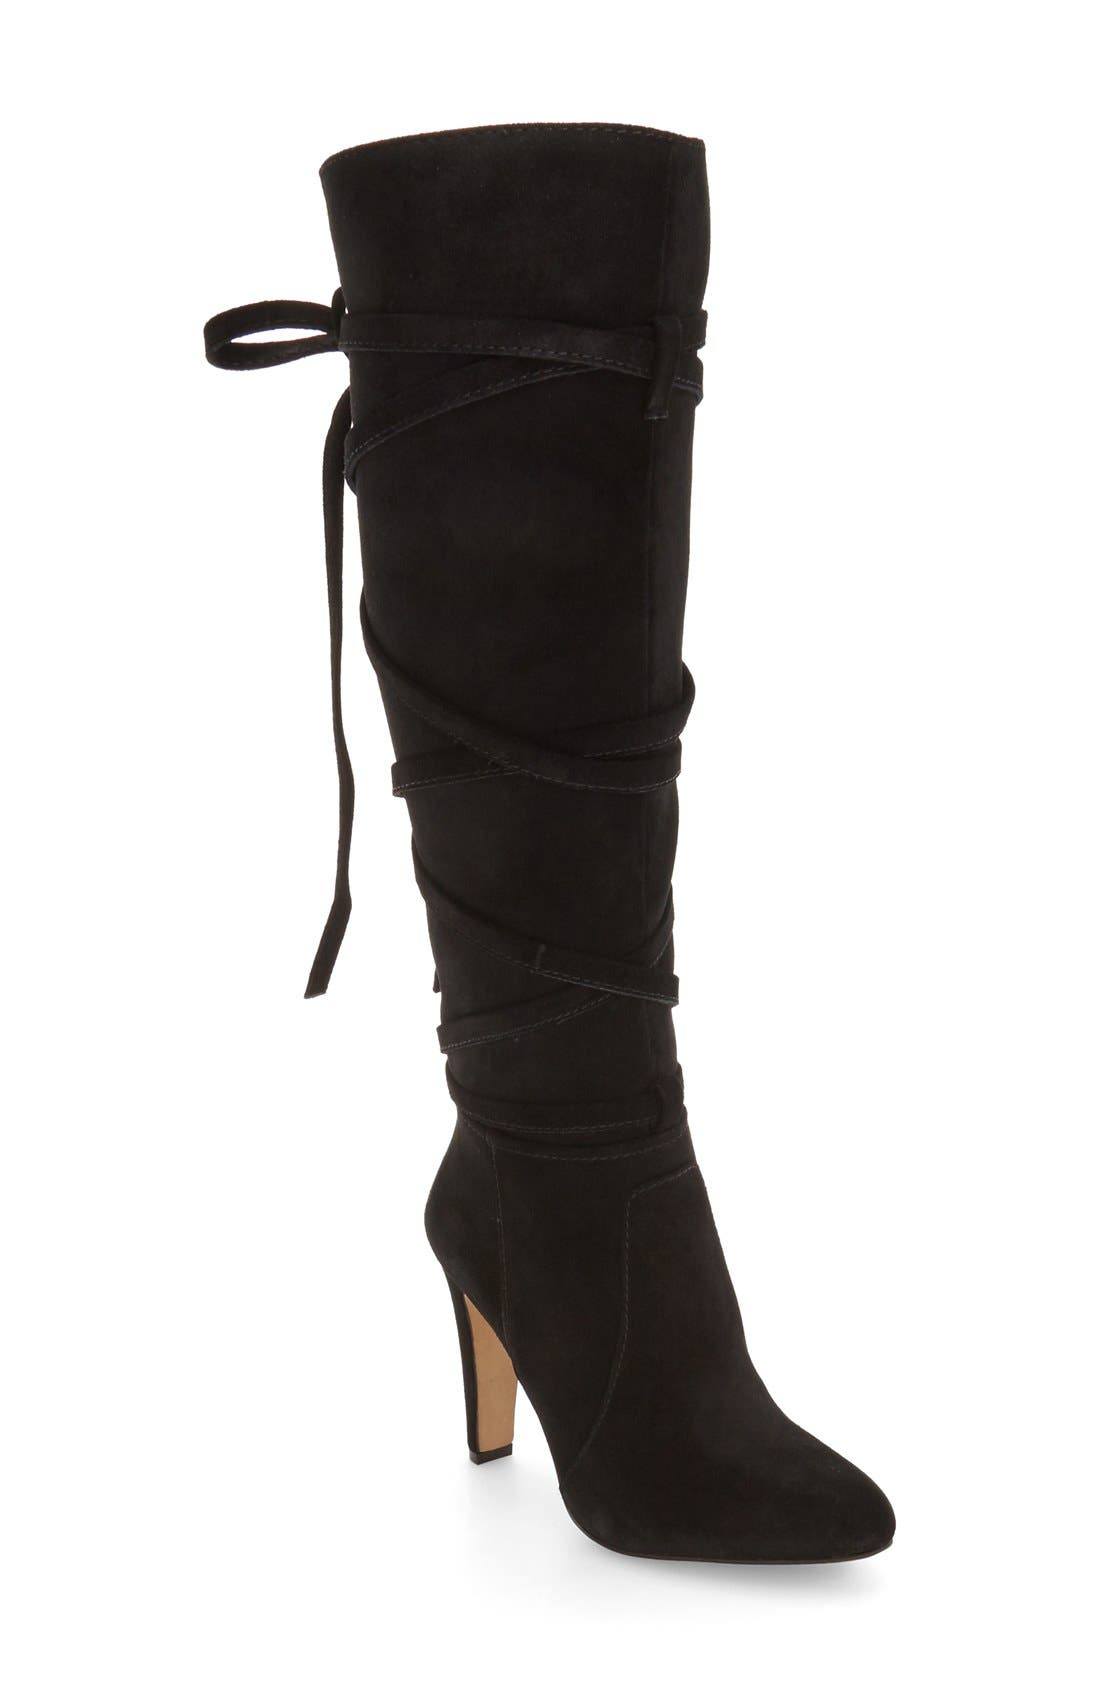 VINCE CAMUTO 'Millay' Knee High Boot, Main, color, 002